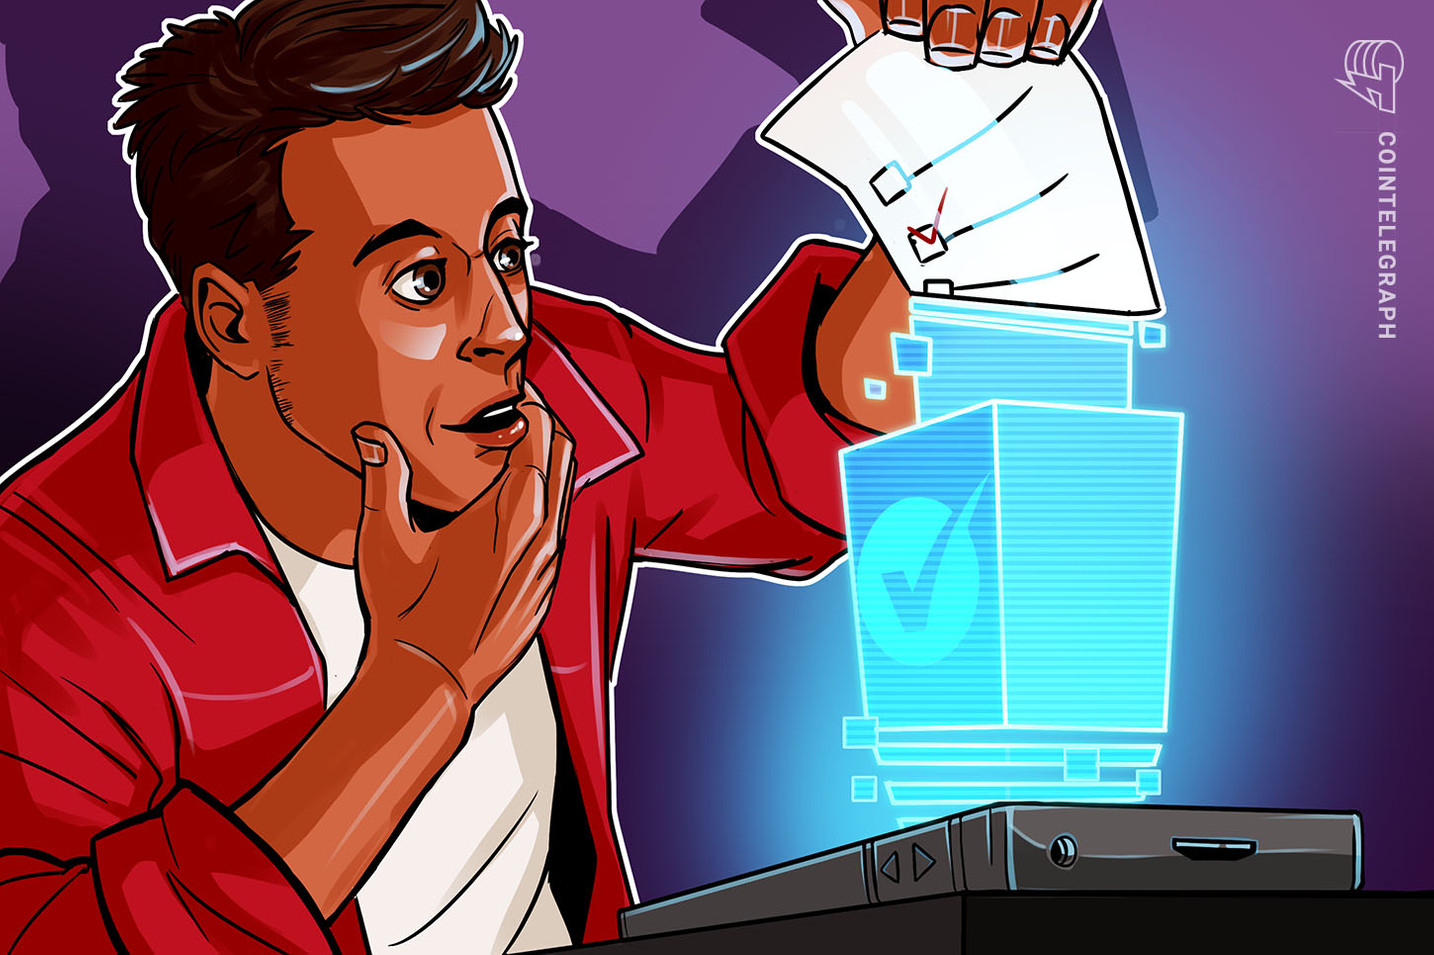 Voatz 'Blockchain' App Used in US Elections Has Numerous Security Issues, Says Report